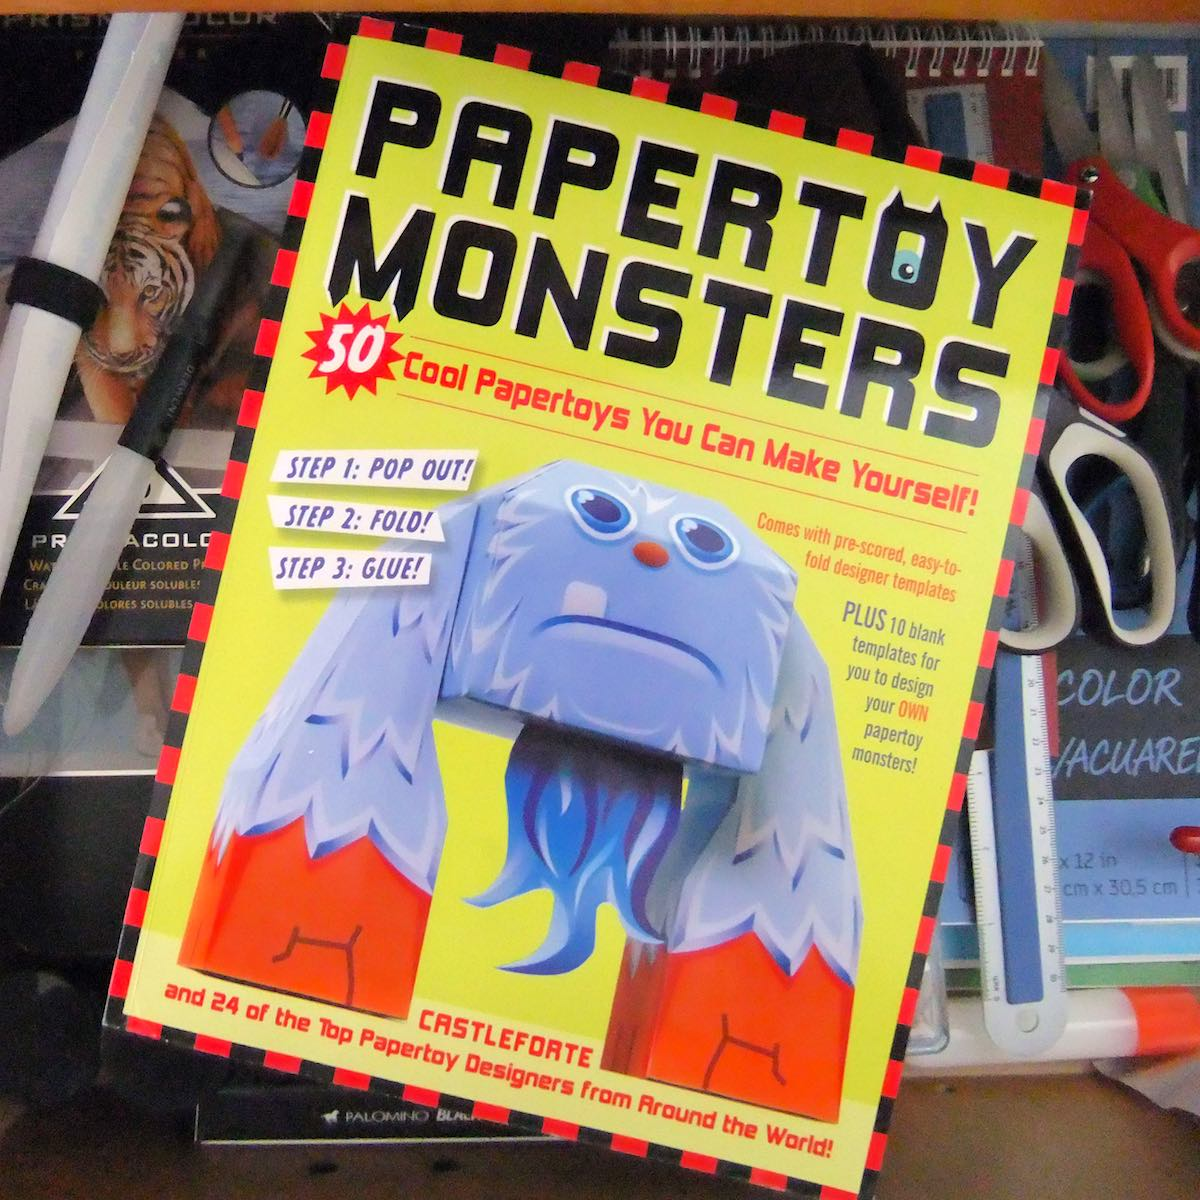 Papertoy Monsters – Build 50 3D toys with just paper and